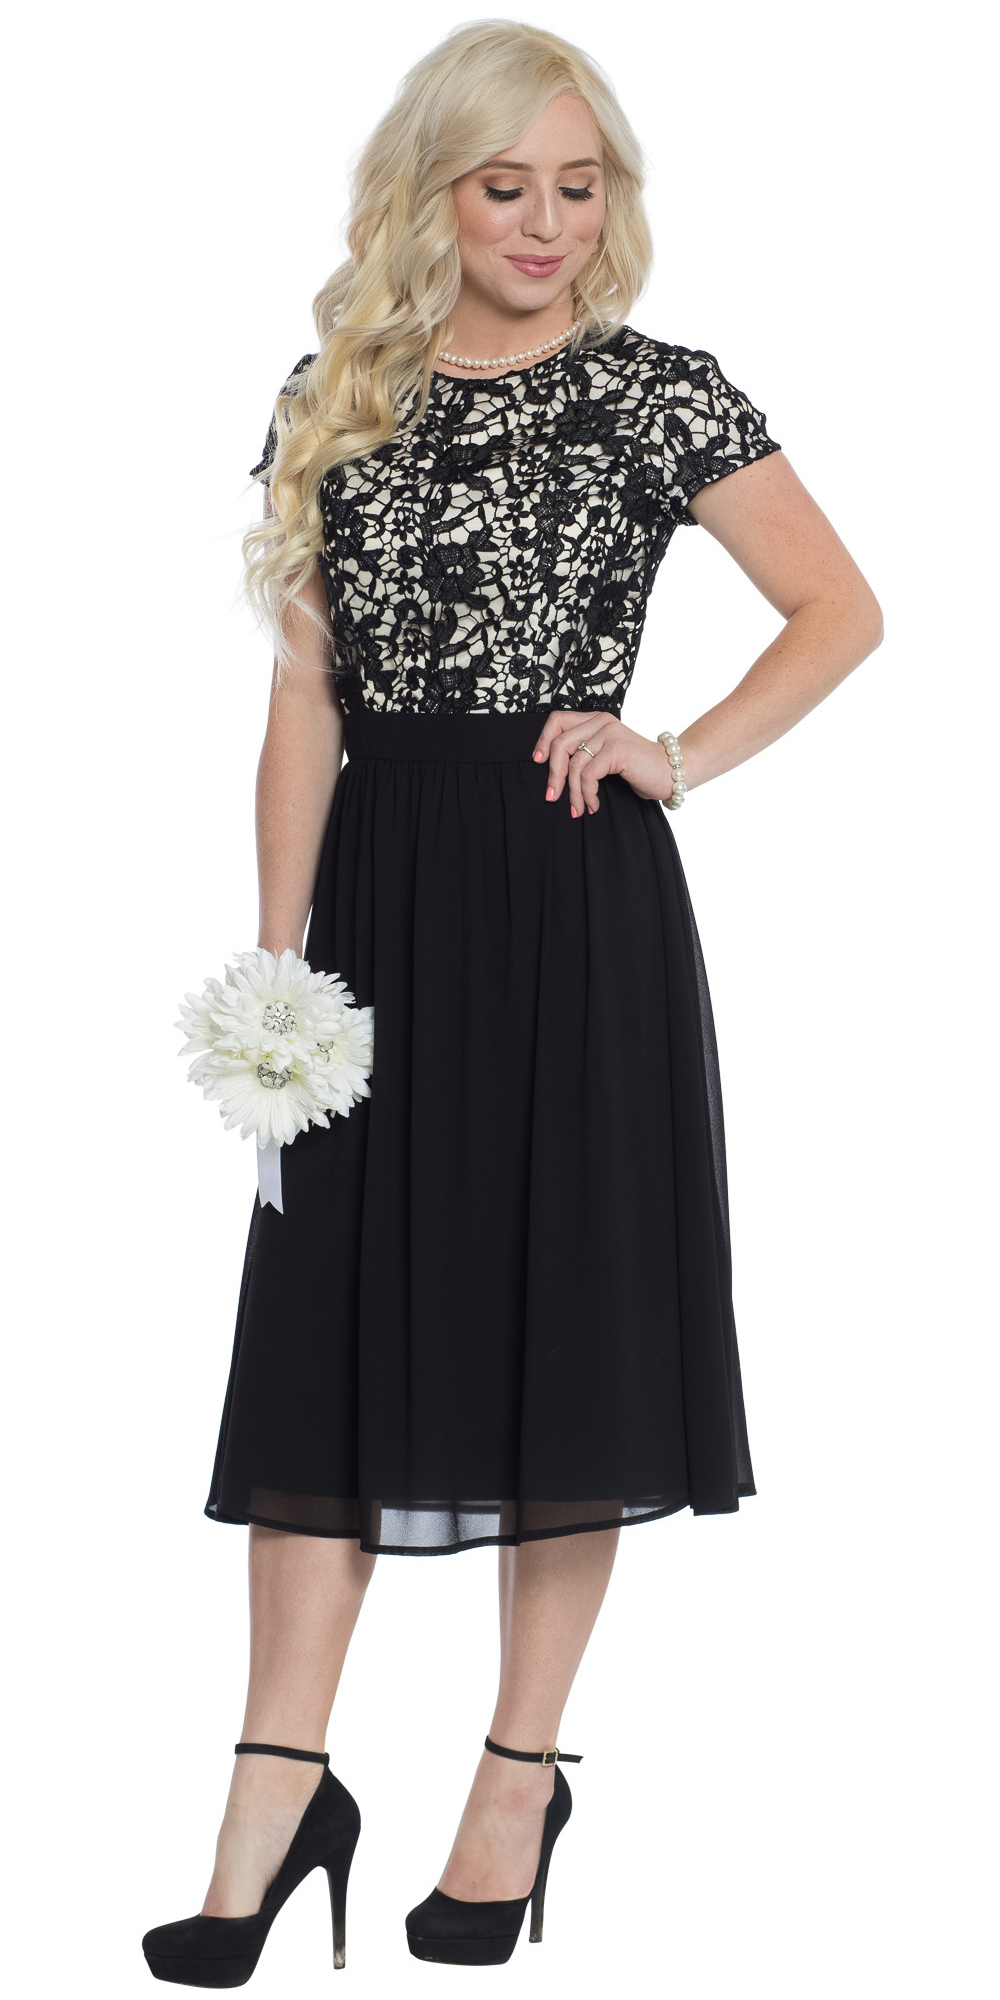 Lace & Chiffon Modest Prom Dress or Cocktail Dress in Black, Semi ...